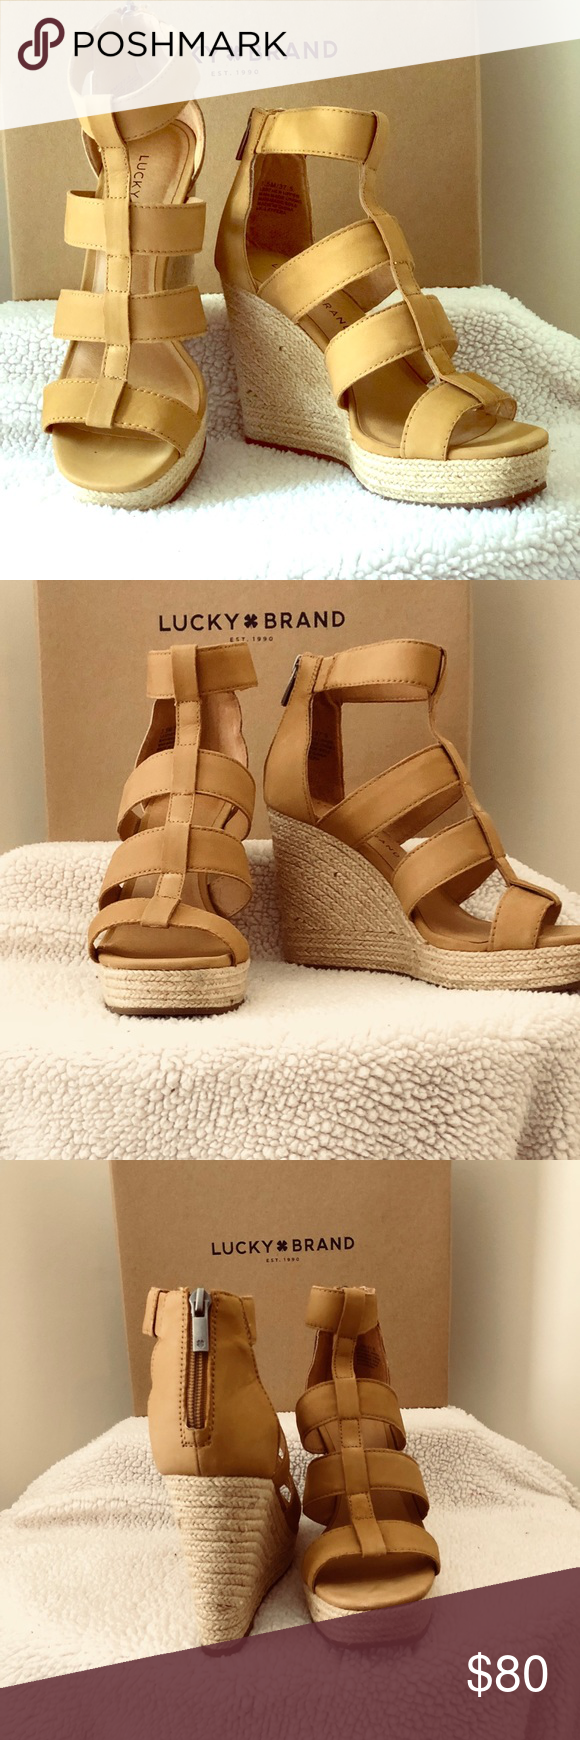 ae3633e0deefdf 7.5 Lucky Lateera wedge sandal in Sandbox. Worn one day for graduation  ceremonies last year. Very comfortable and stylish as always with Lucky.